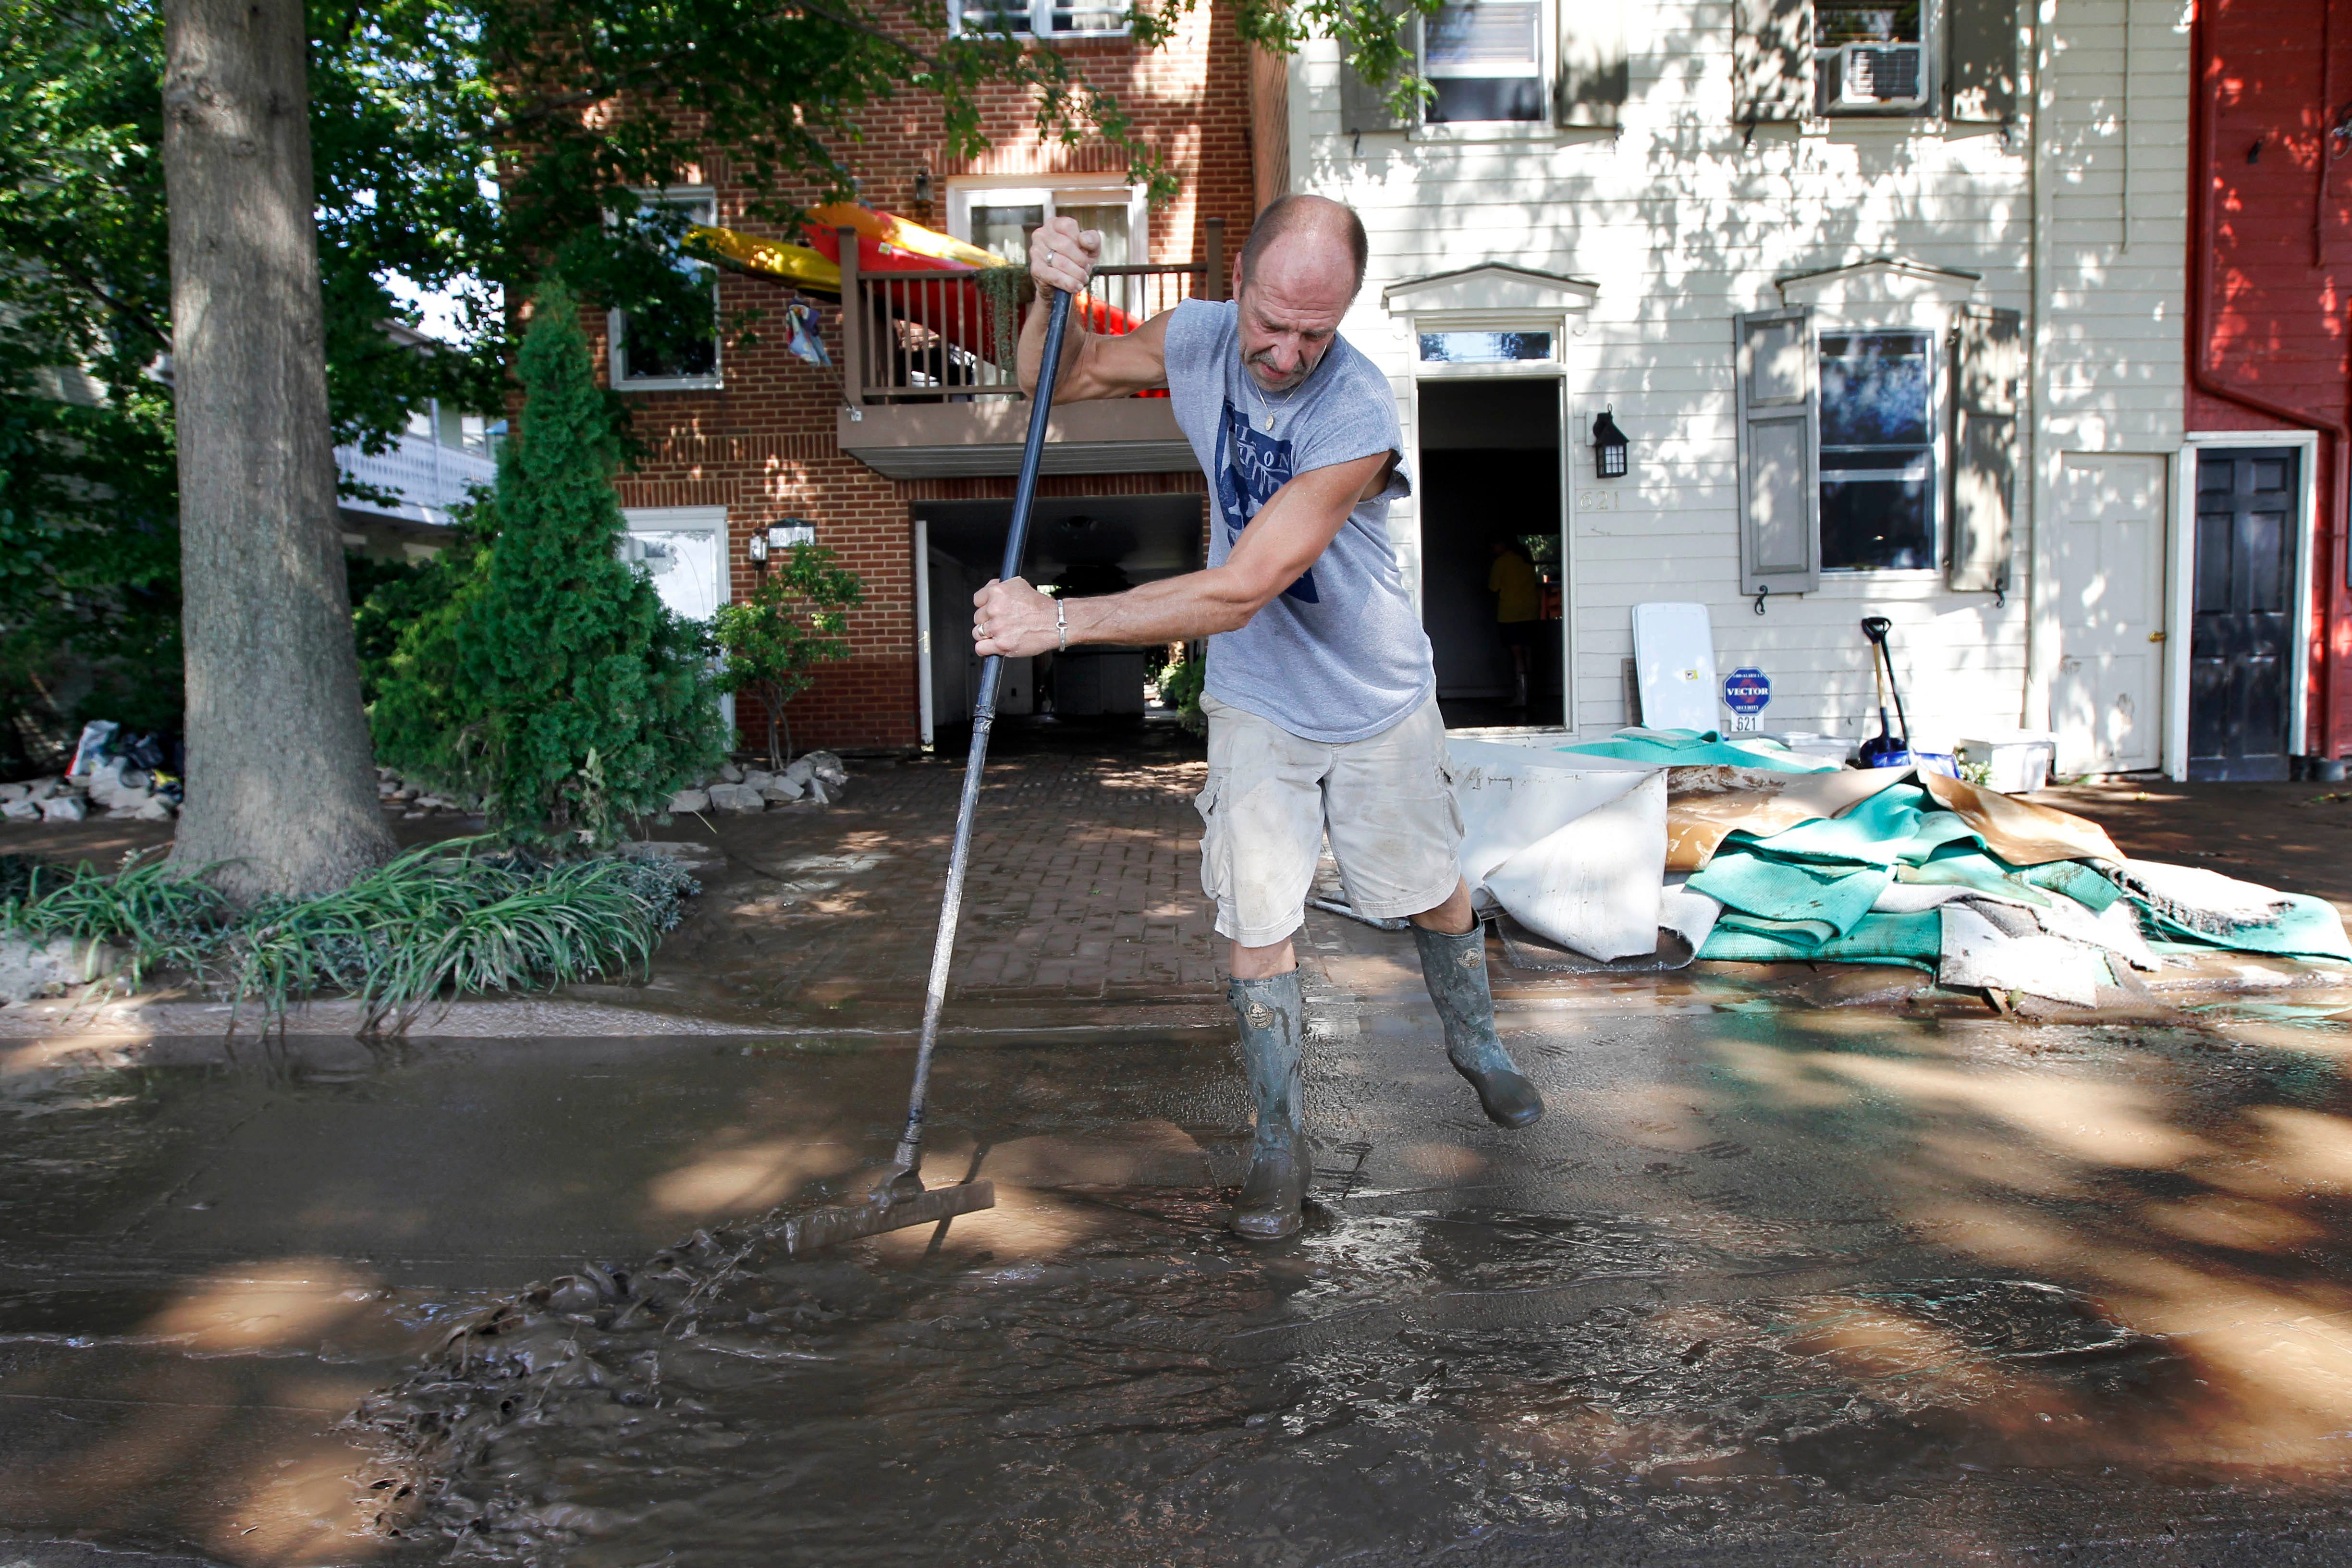 Michael Snyder scrapes away the mud after flooding from the Susquehanna River caused by the remnants of Tropical Storm Lee, Saturday, Sept. 10, 2011 in the Shipoke area of Harrisburg, Pa.